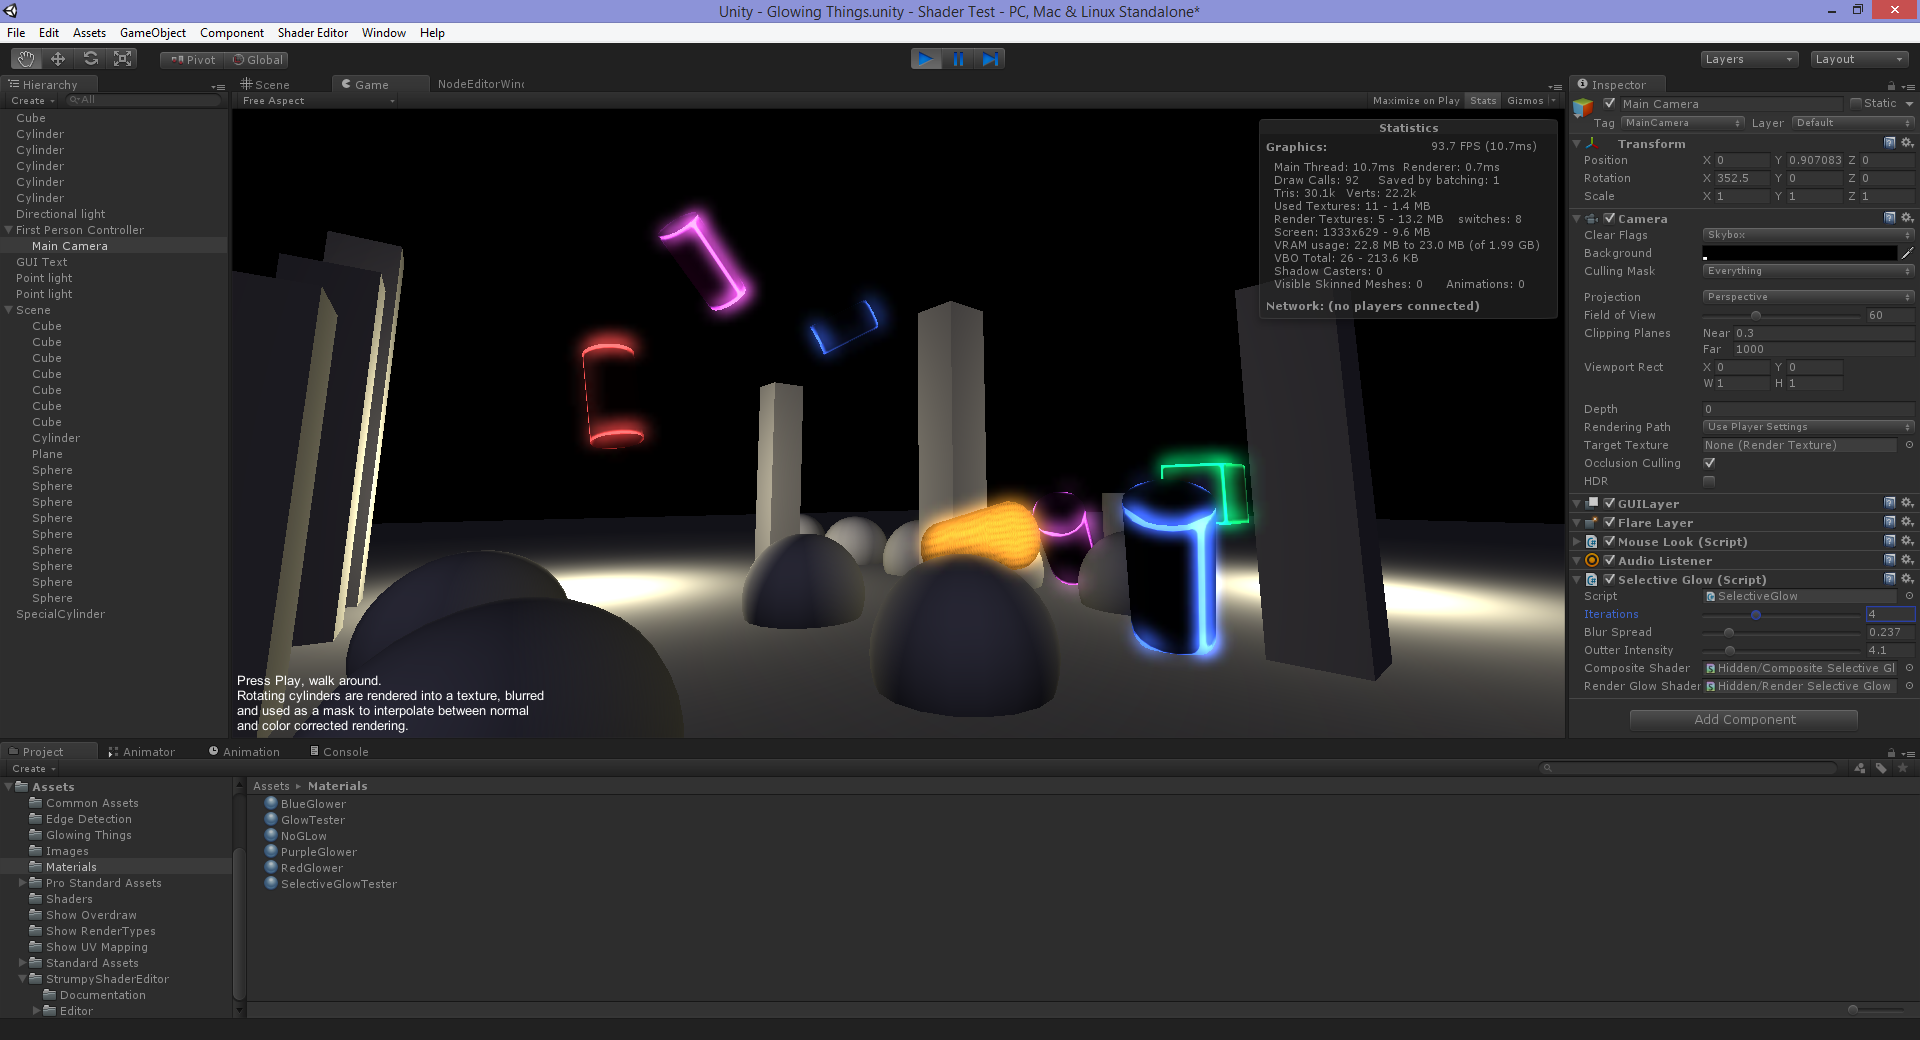 Selective Glow for Unity 3D image - Heathen Engineering - Indie DB